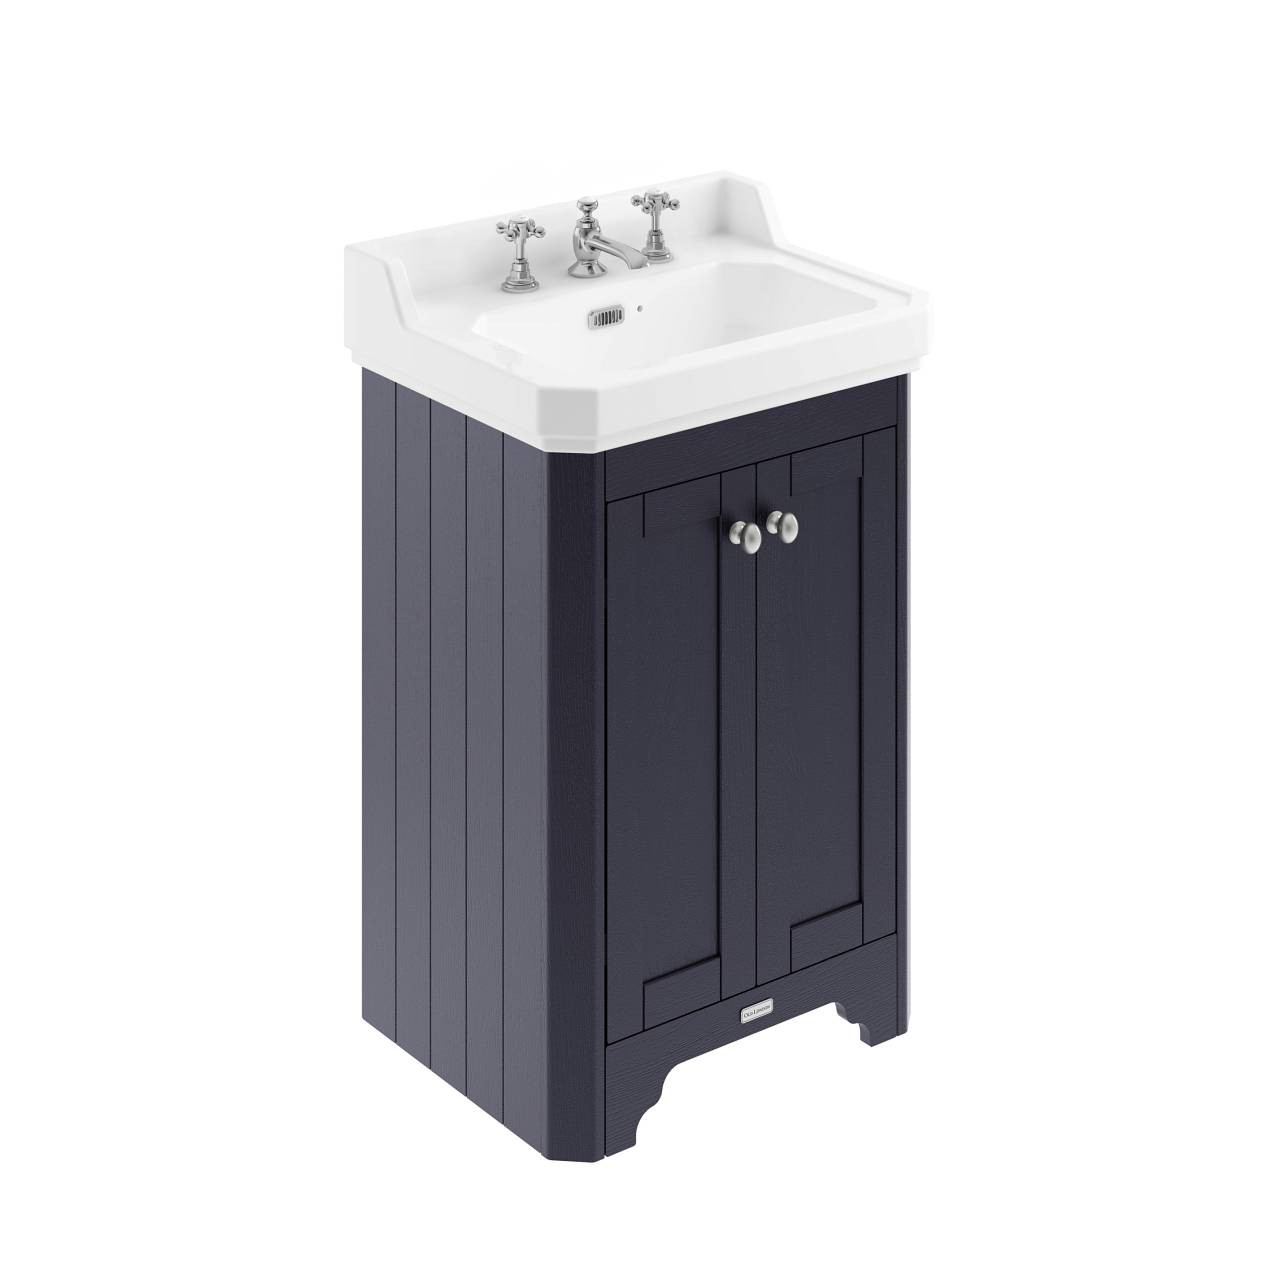 Old London Twilight Blue 560mm 2 Door Vanity Unit and Basin with 3 Tap Holes - LOF375